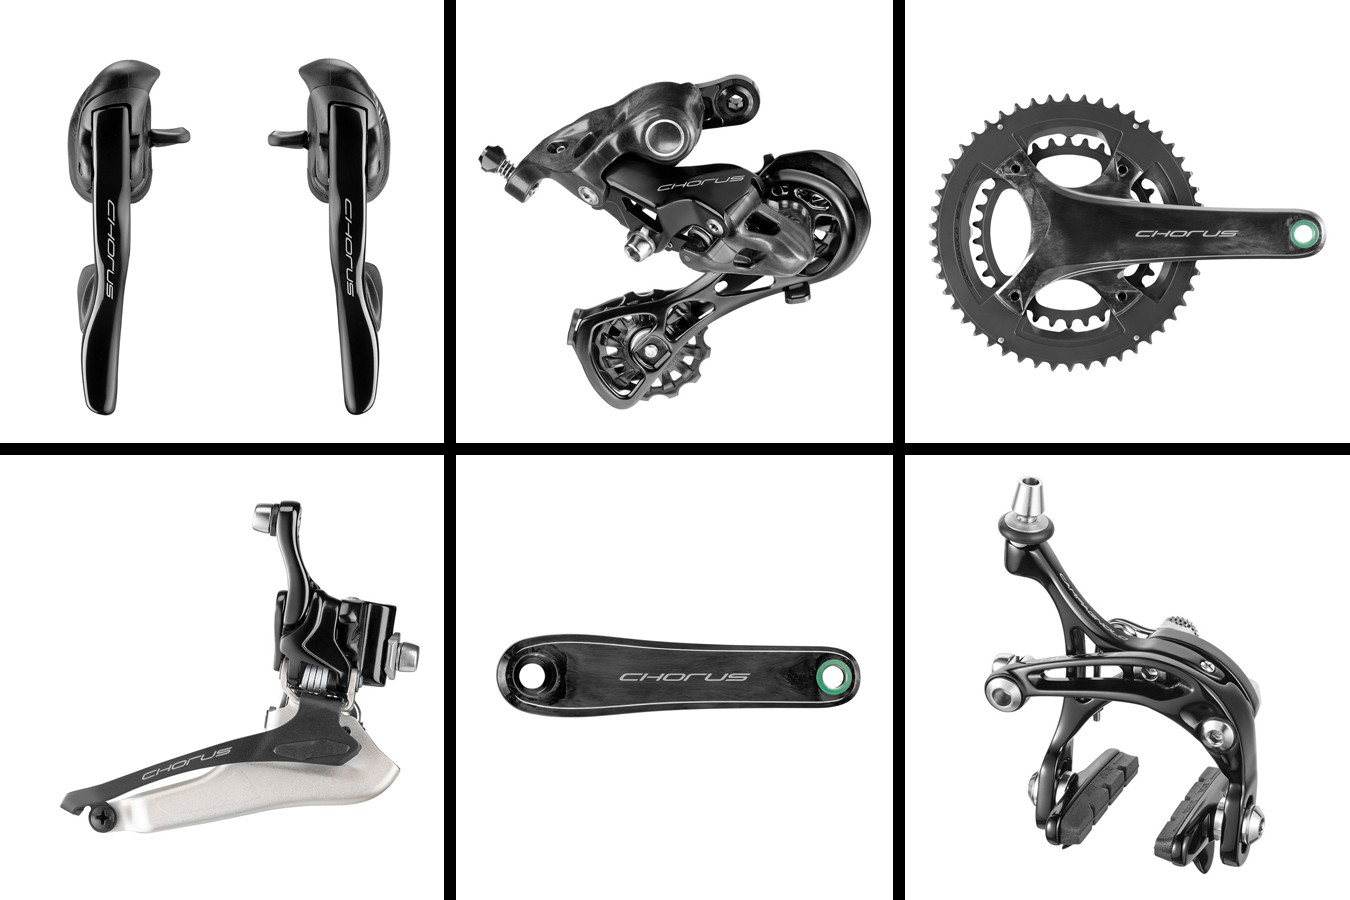 Campagnolo's Chorus 12-speed groupset